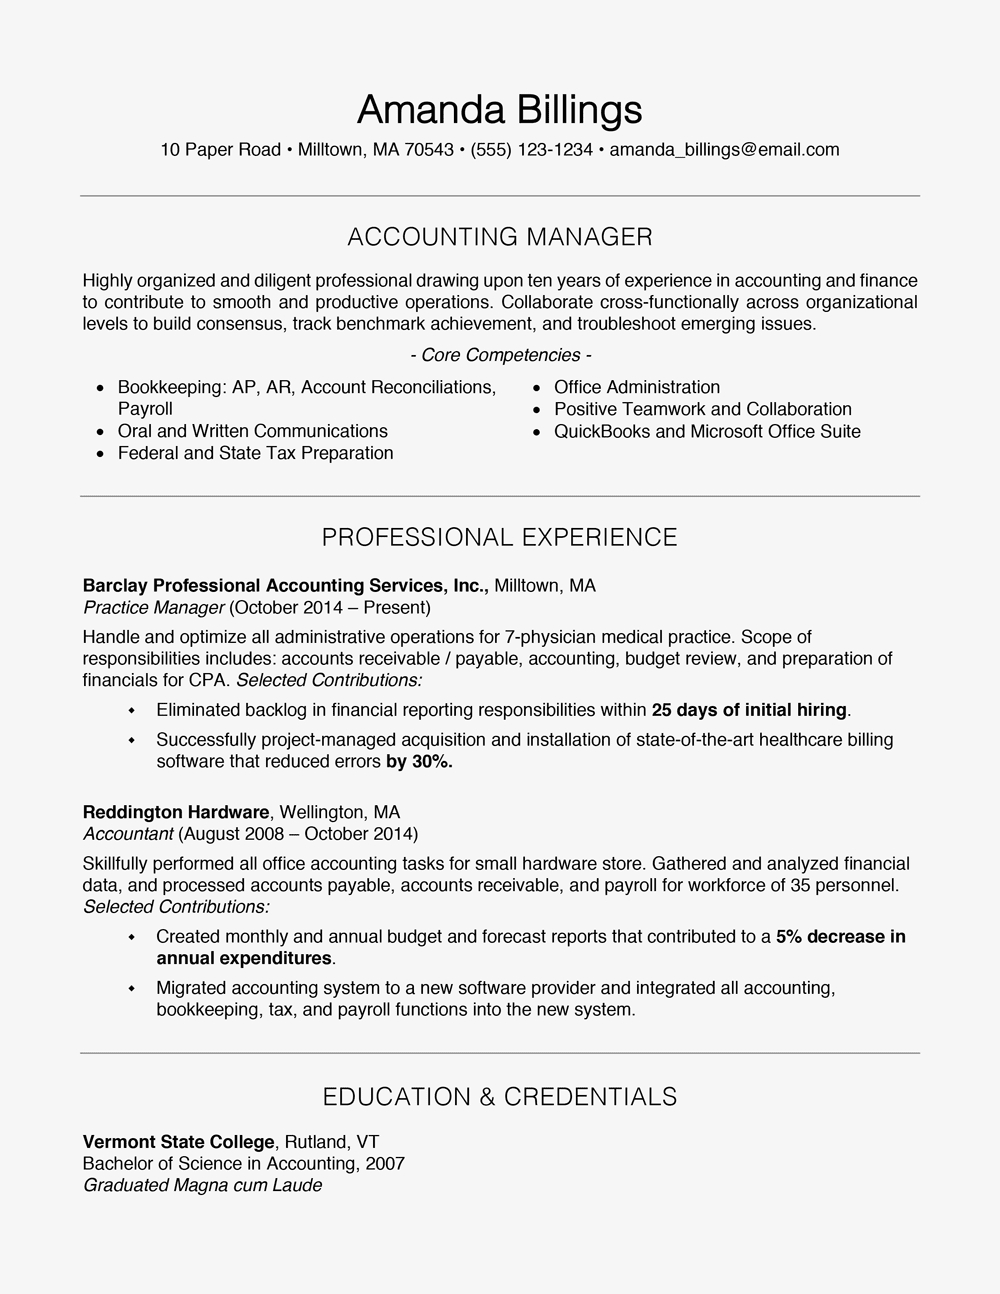 Core Competencies Resume Sample - 100 Free Professional Resume Examples and Writing Tips